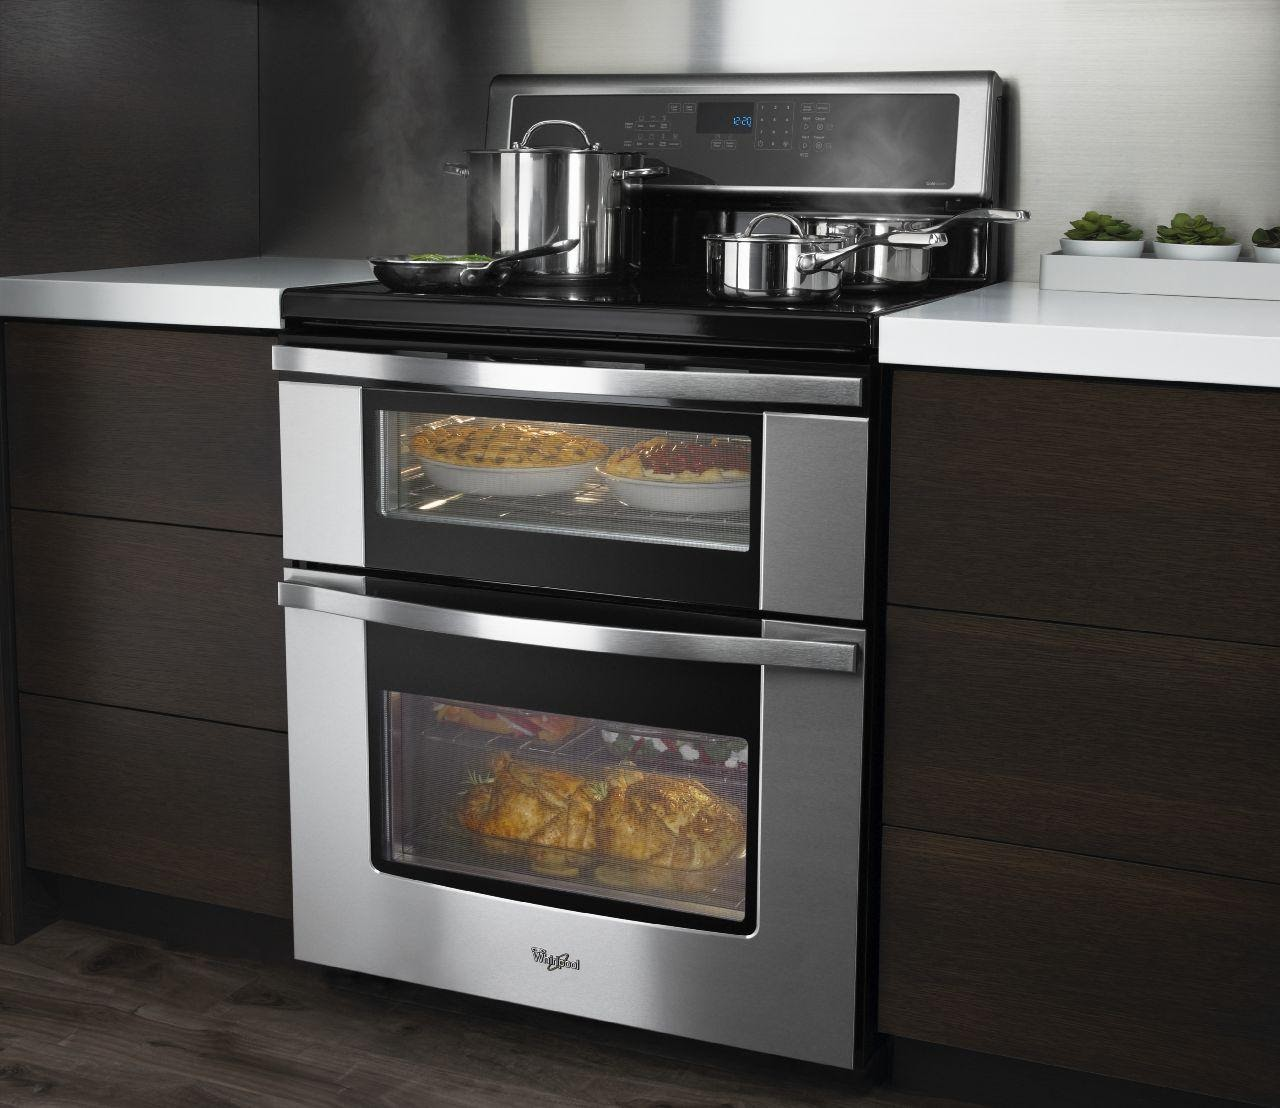 Photo of Double oven